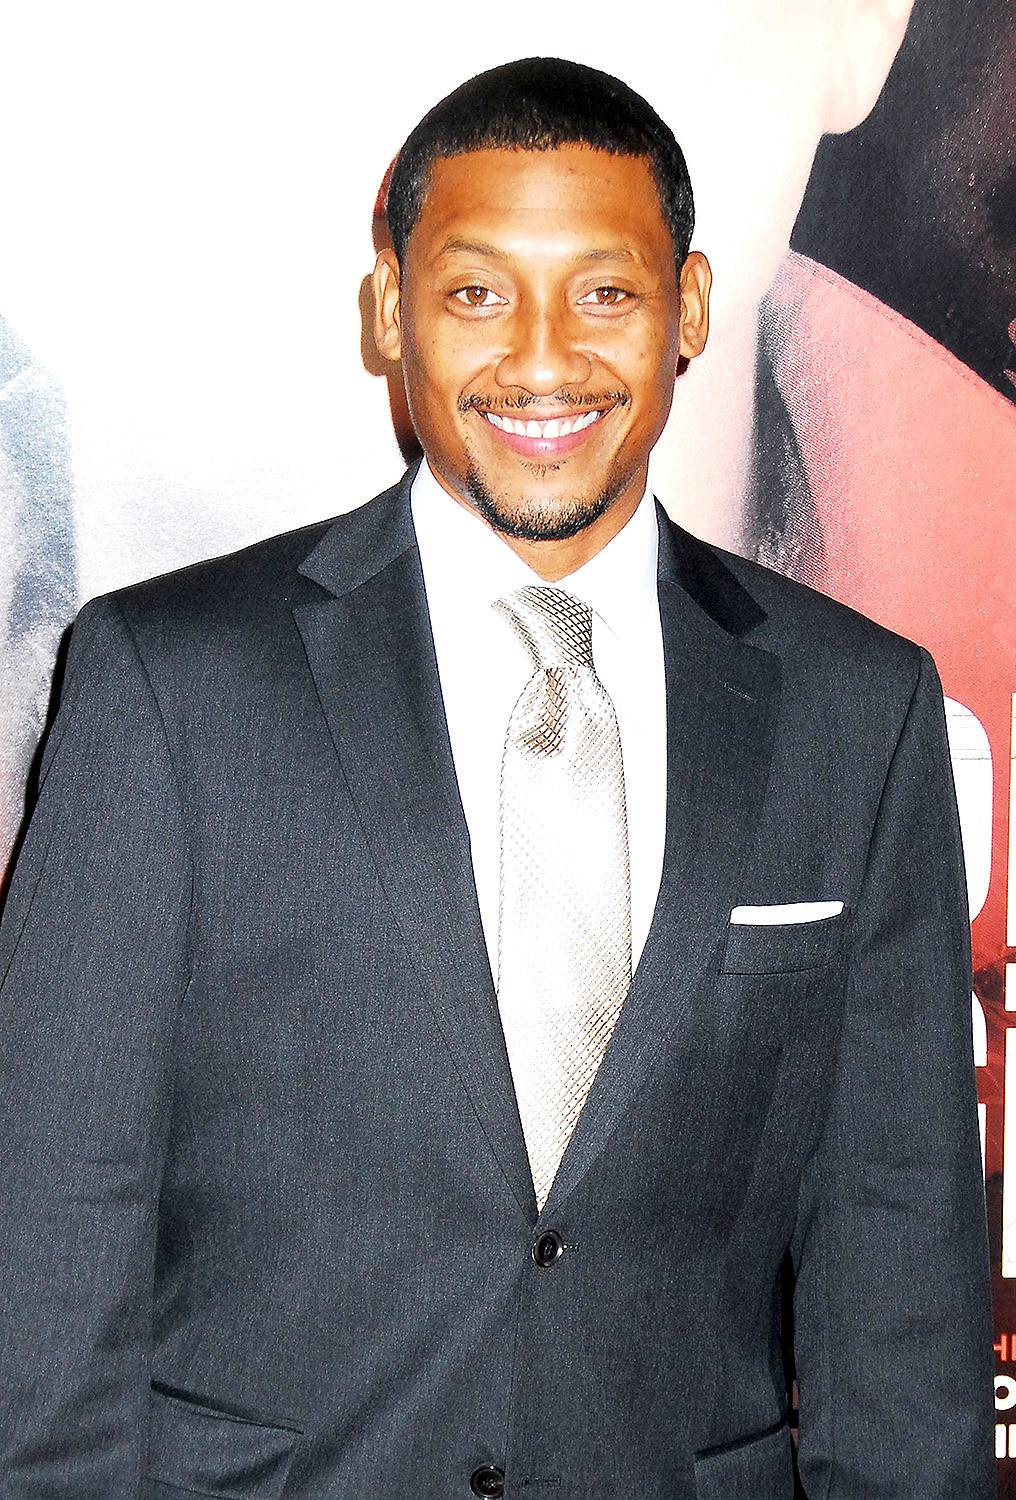 Two Decades of Khalil Kain - New York City native Khalil Kain has been lighting up the screen for almost two decades starring in some of our favorite films and TV series. Here's a look at some of his notable roles beginning with his classic character Raheem Porter in Juice.Watch #BLX: In New York With Khalil Kain(Photo: WENN)